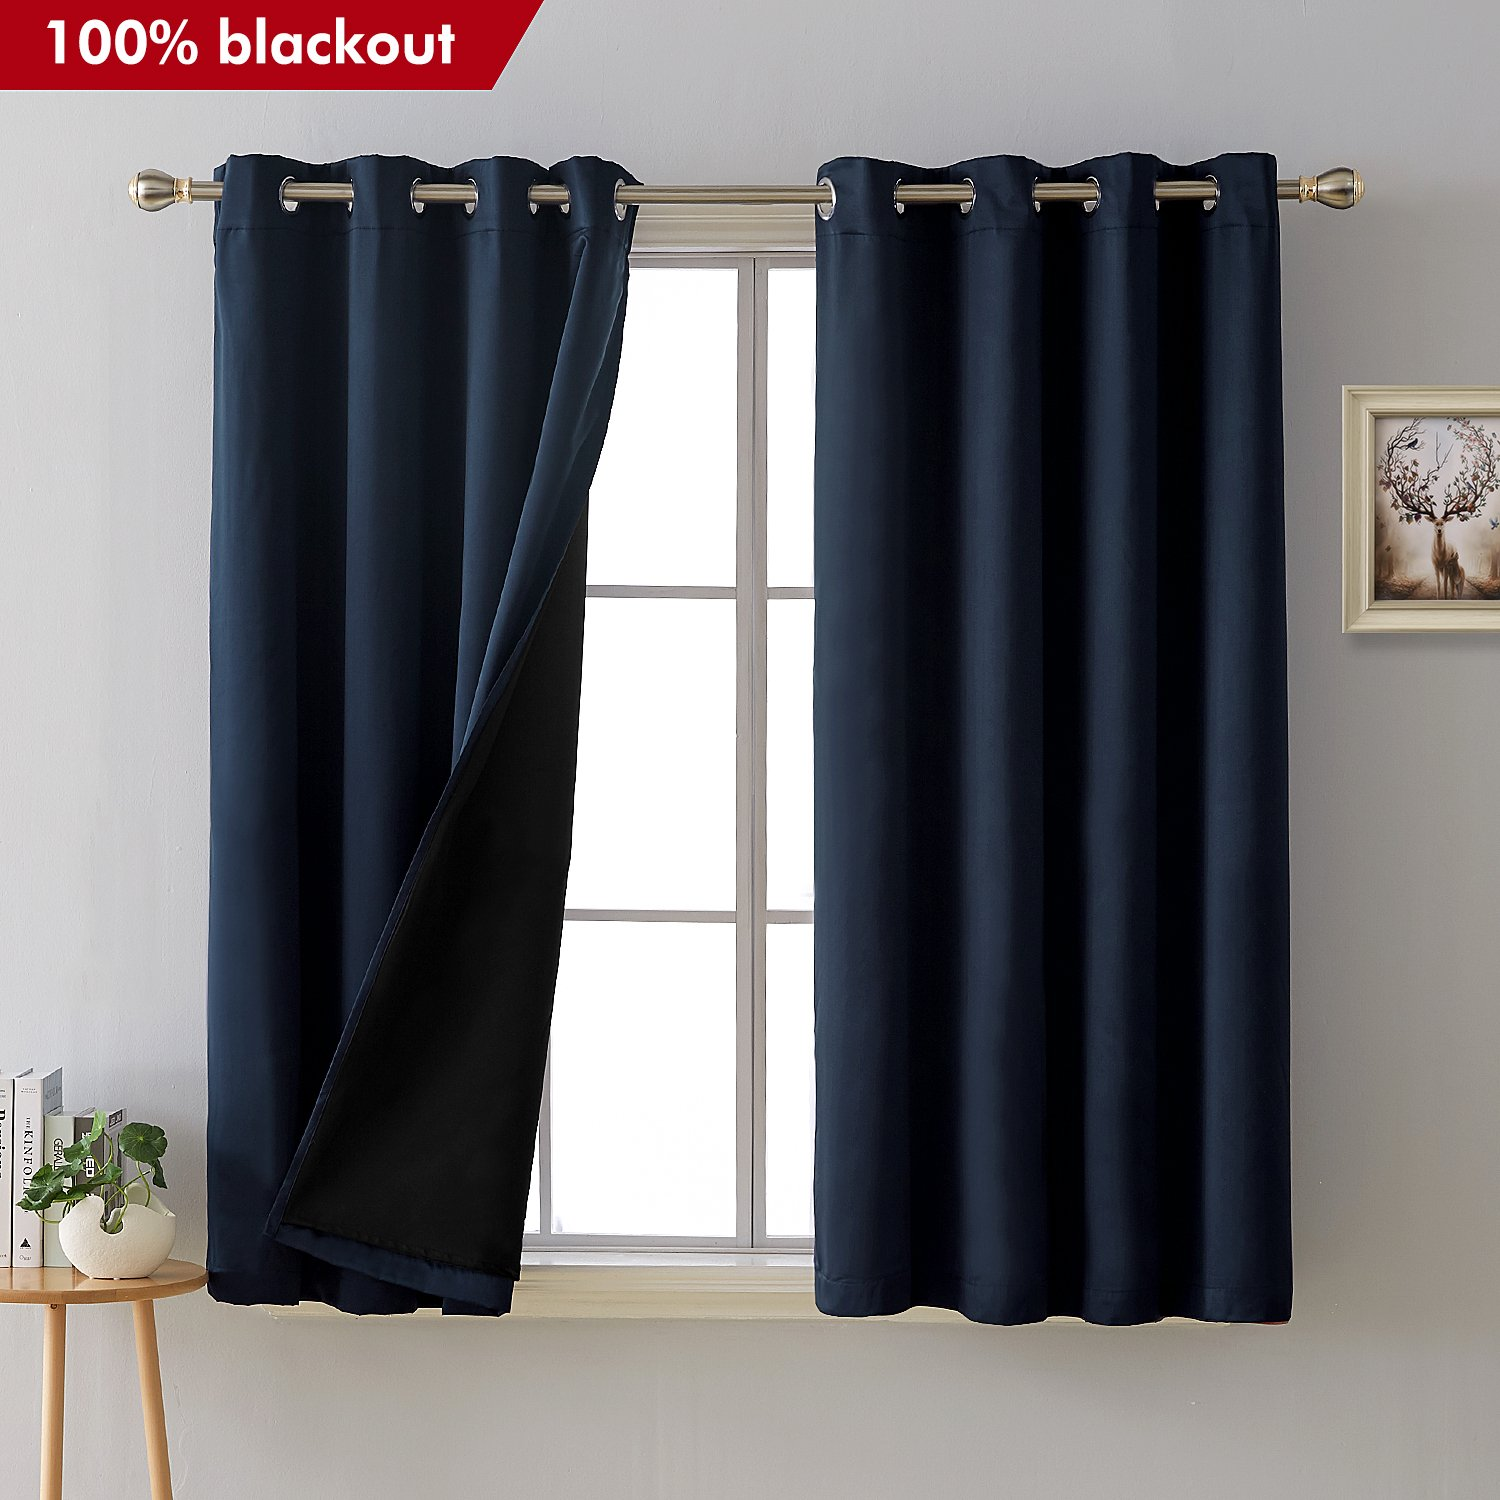 Total Blackout Curtains Grommet Faux Silk Satin Thermal Insulated Room Darkening